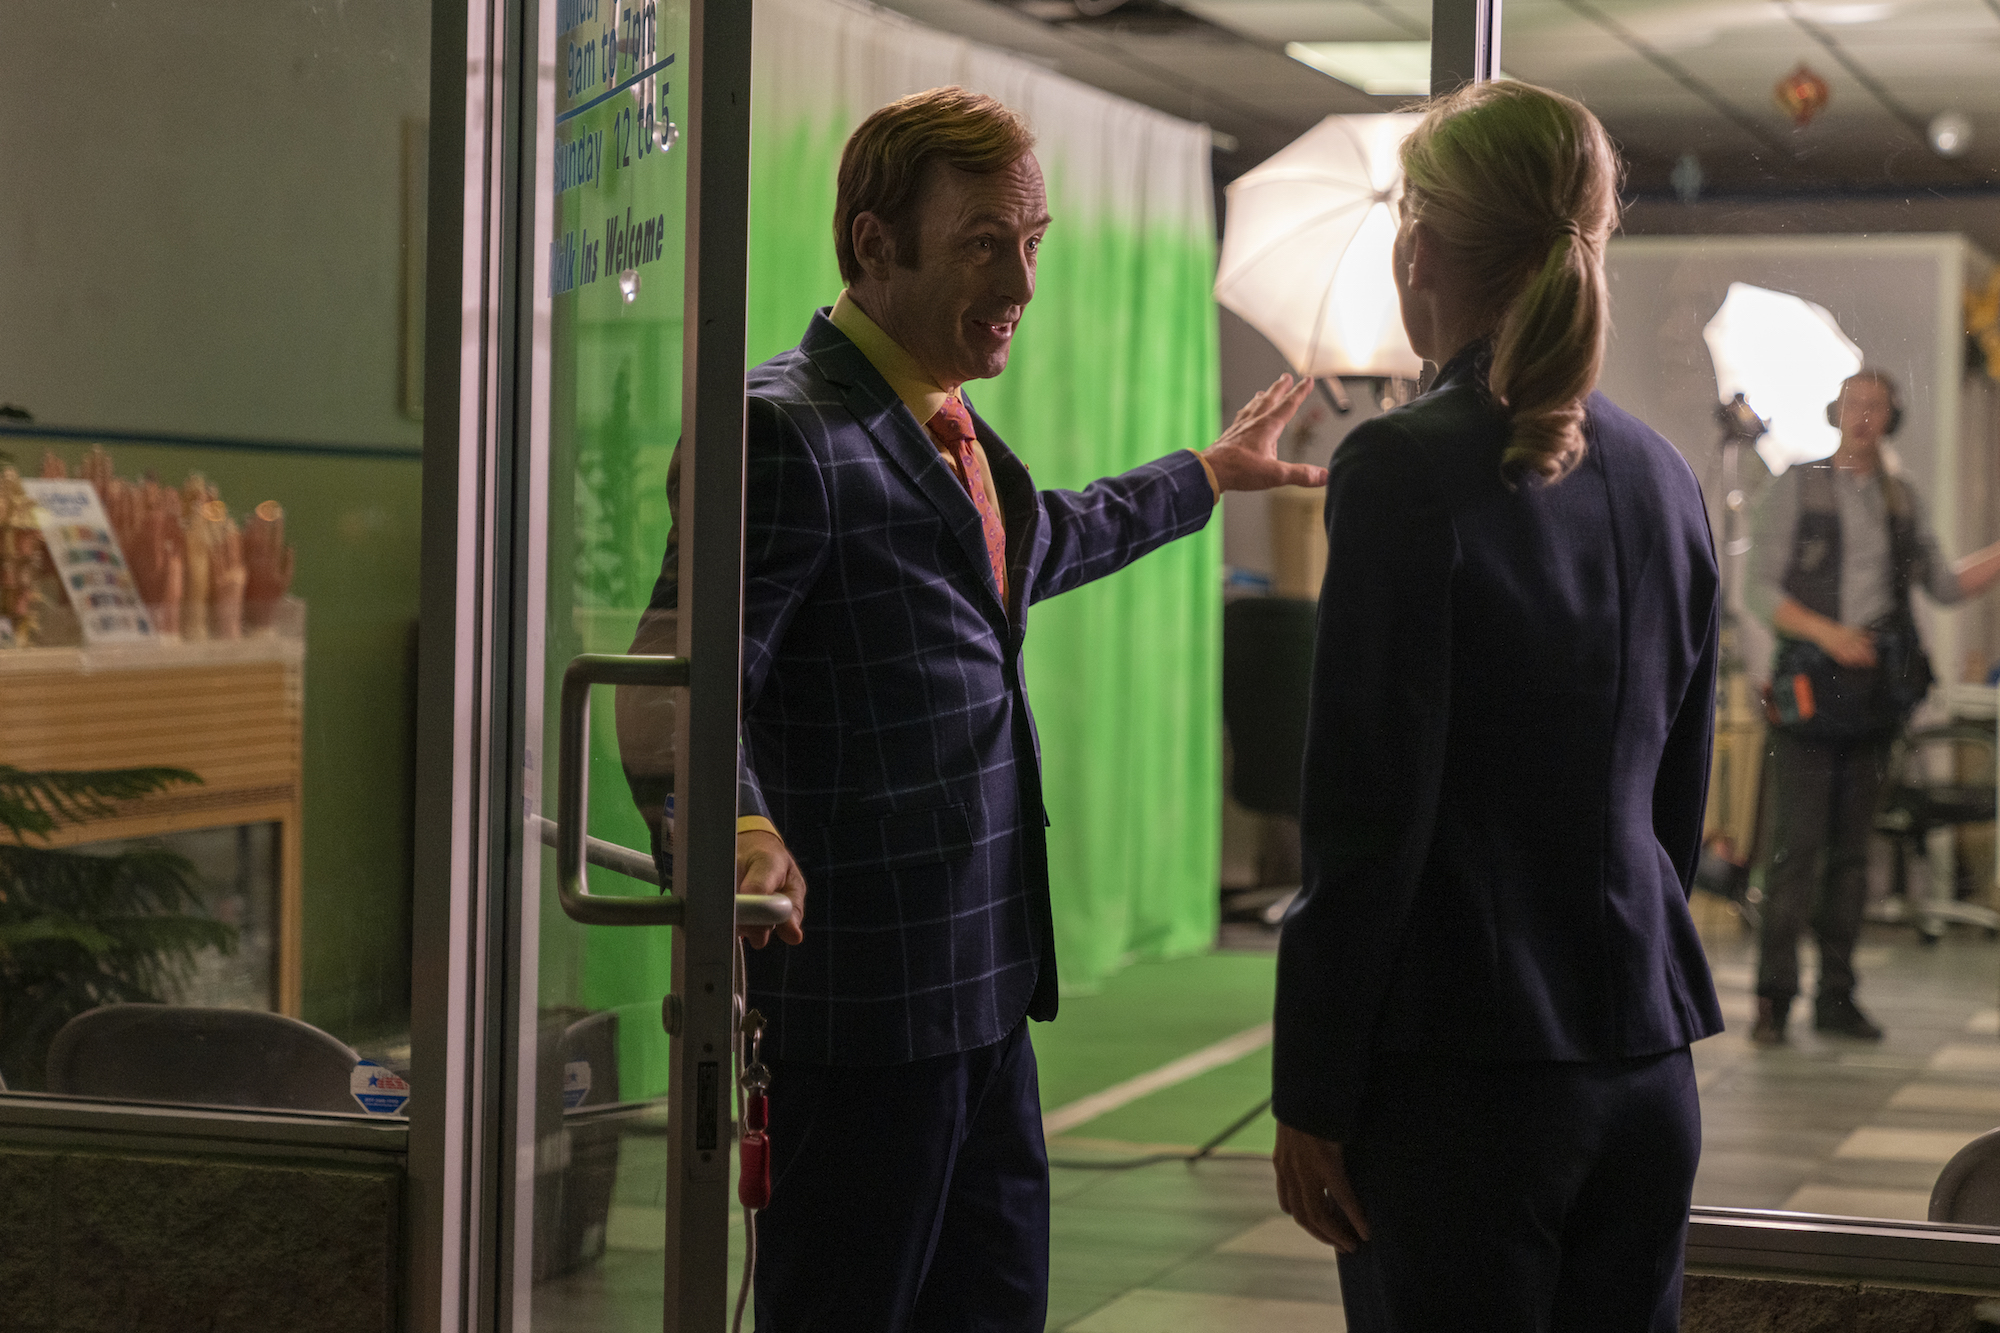 Bob Odenkirk as Jimmy McGill, Rhea Seehorn as Kim Wexler - Better Call Saul _ Season 5, Episode 6 - Photo Credit: Greg Lewis/AMC/Sony Pictures Television